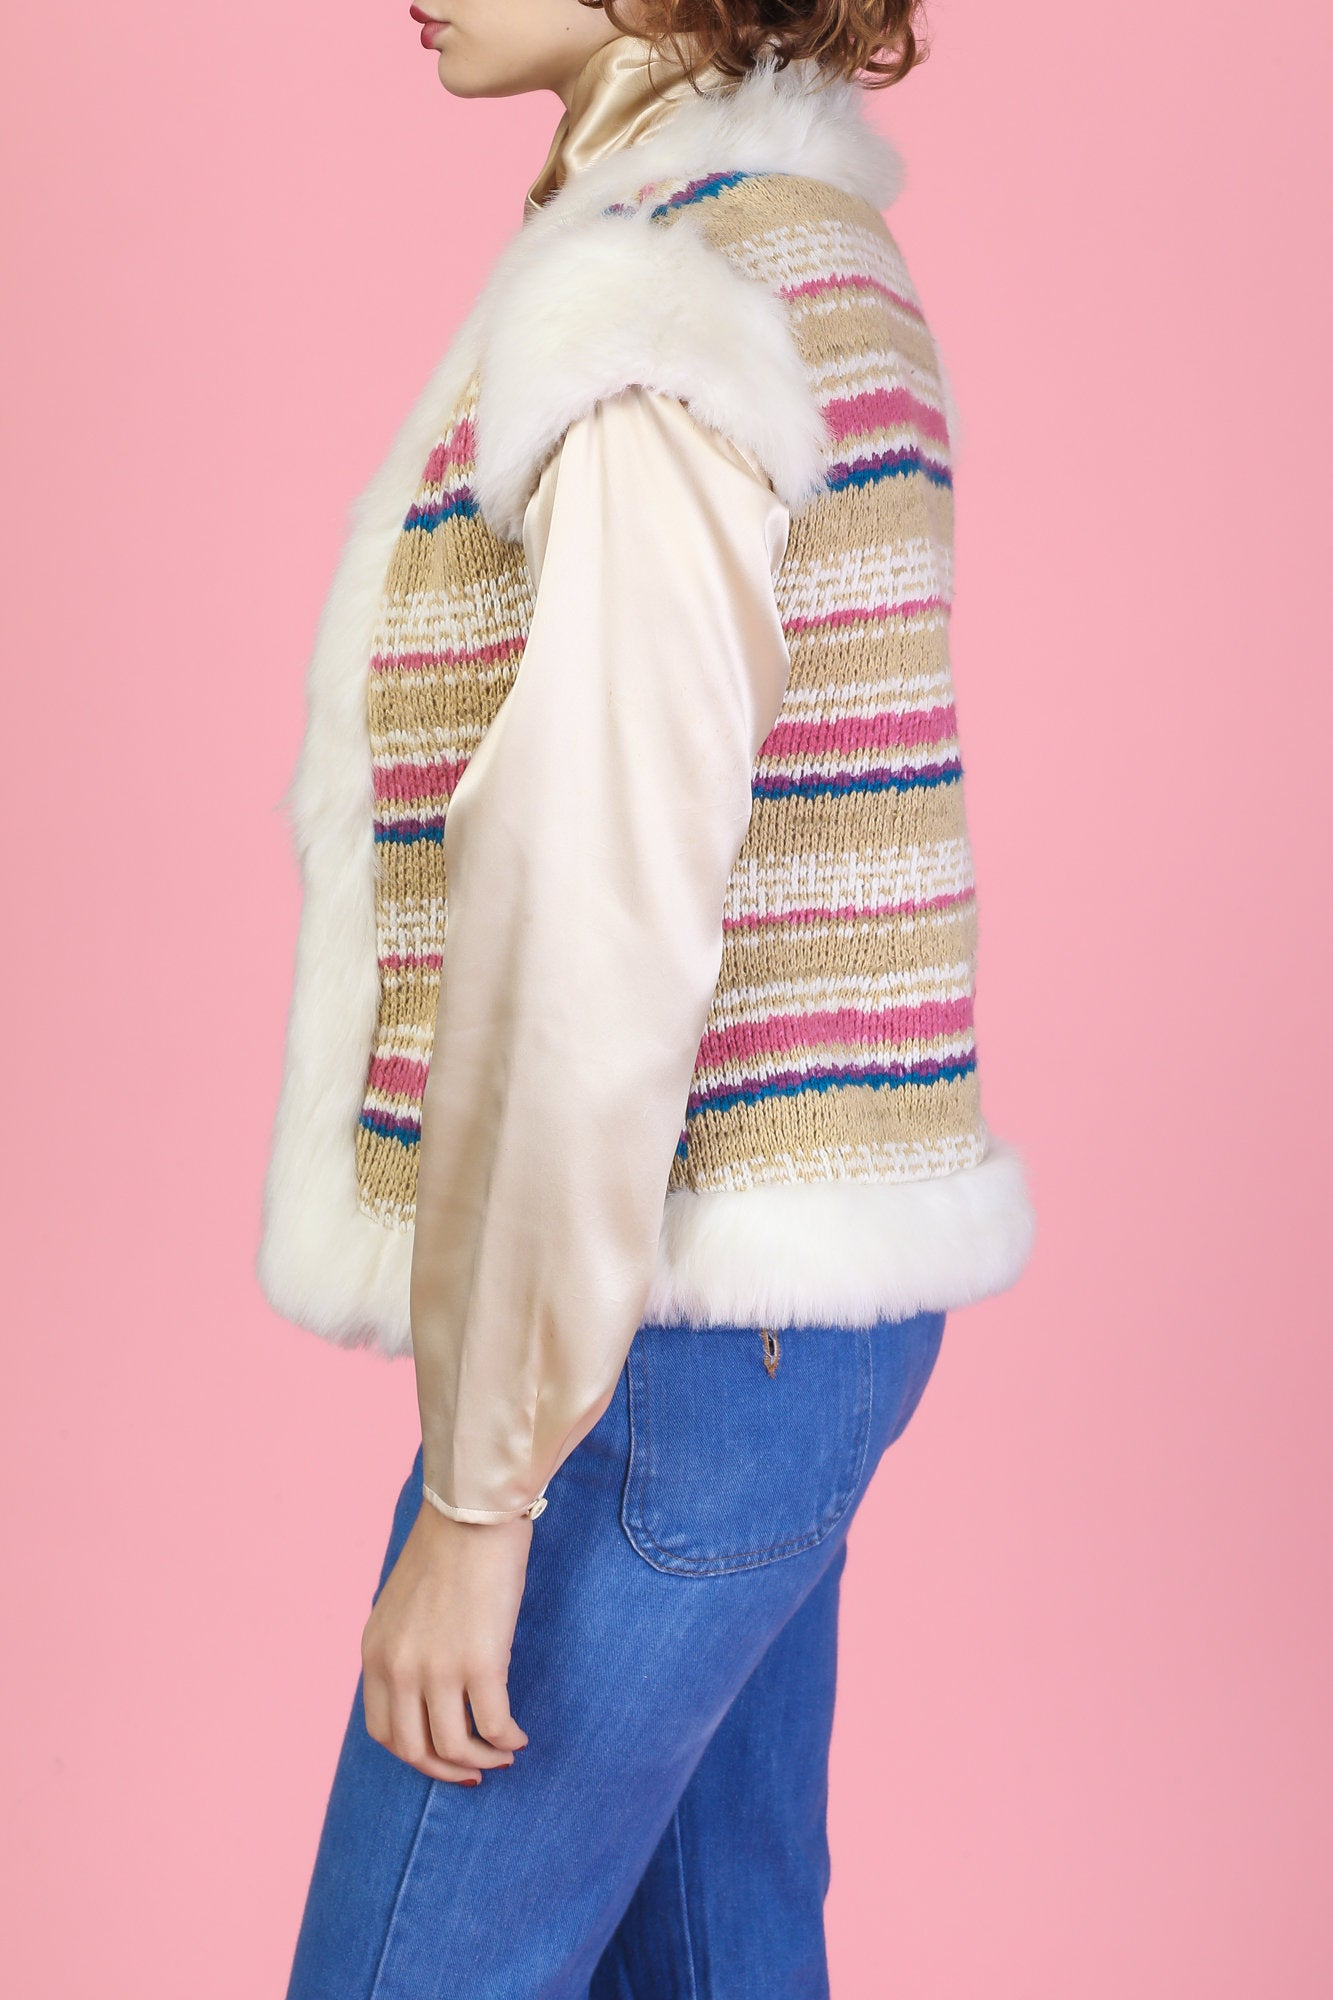 90s Faux Fur Knit Vest - XS to Small